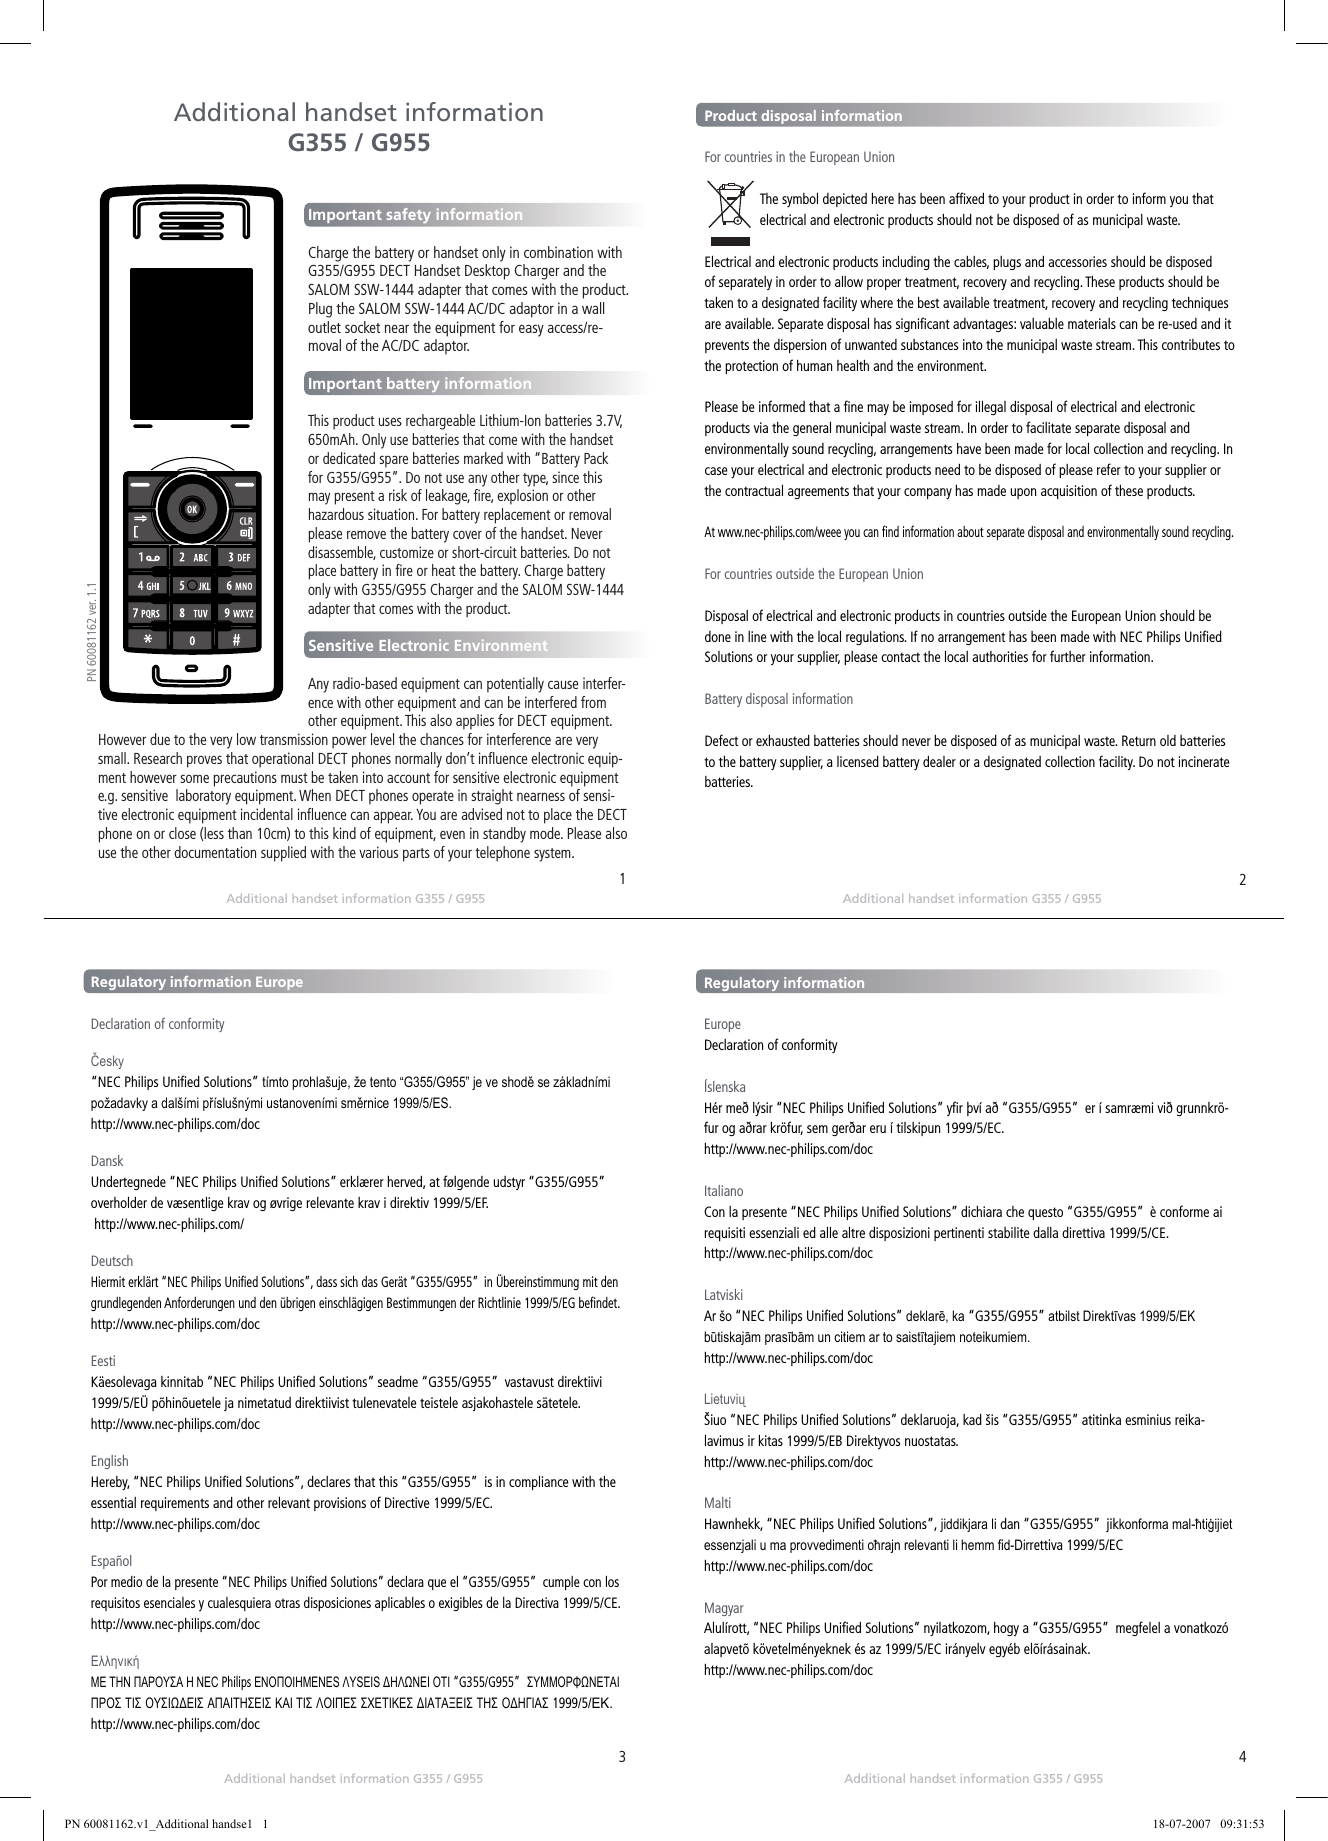 RTX CT8010 Digital Cordless Handset with Caller ID User Manual